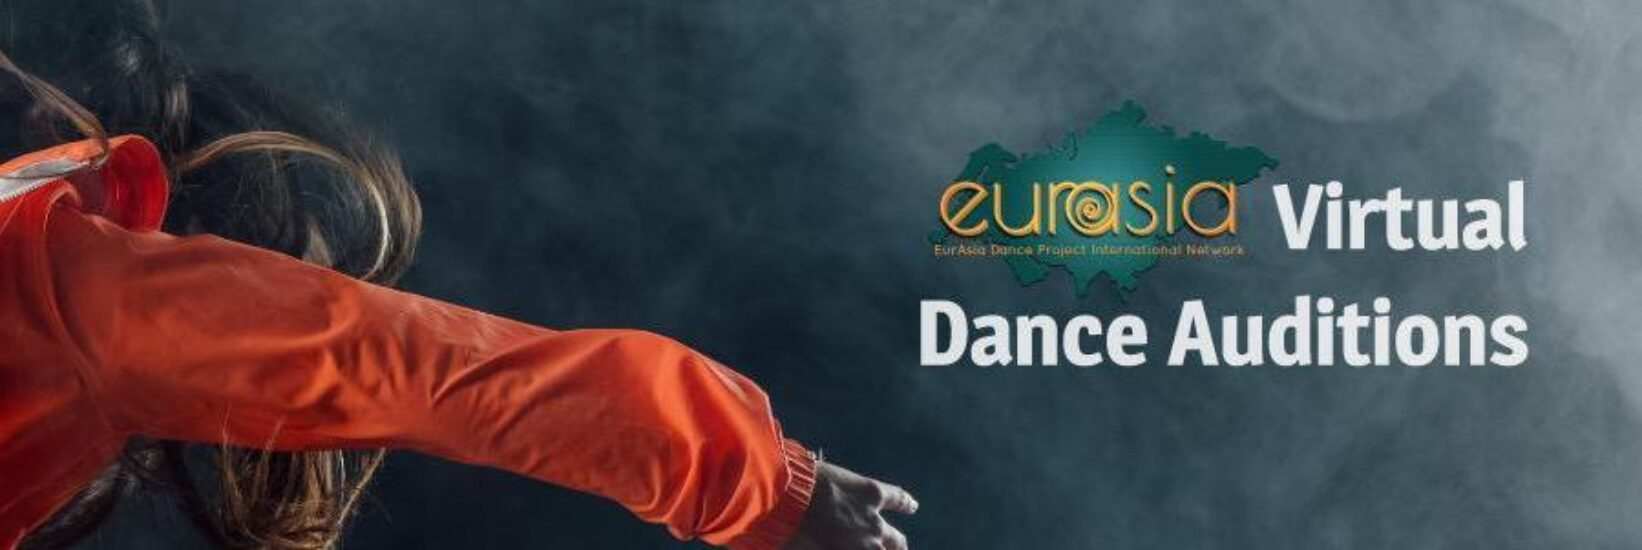 Eurasia Auditions Kuwait 2020